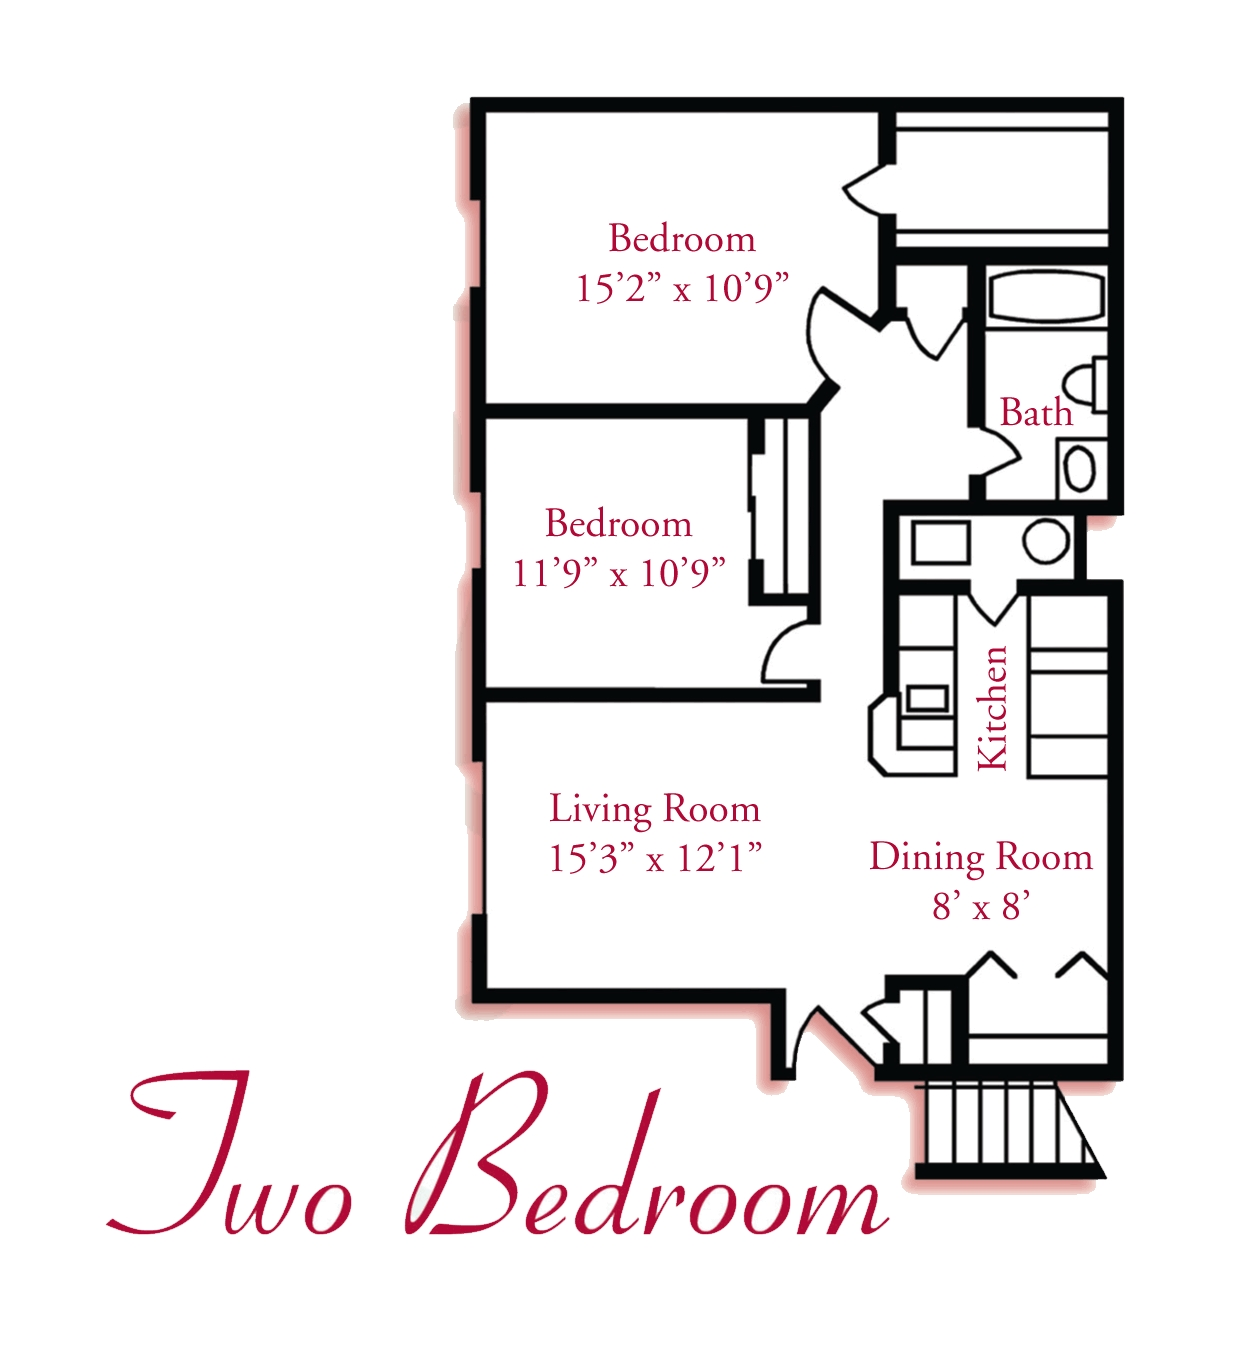 Bedroom Apartments Worthington Ohio